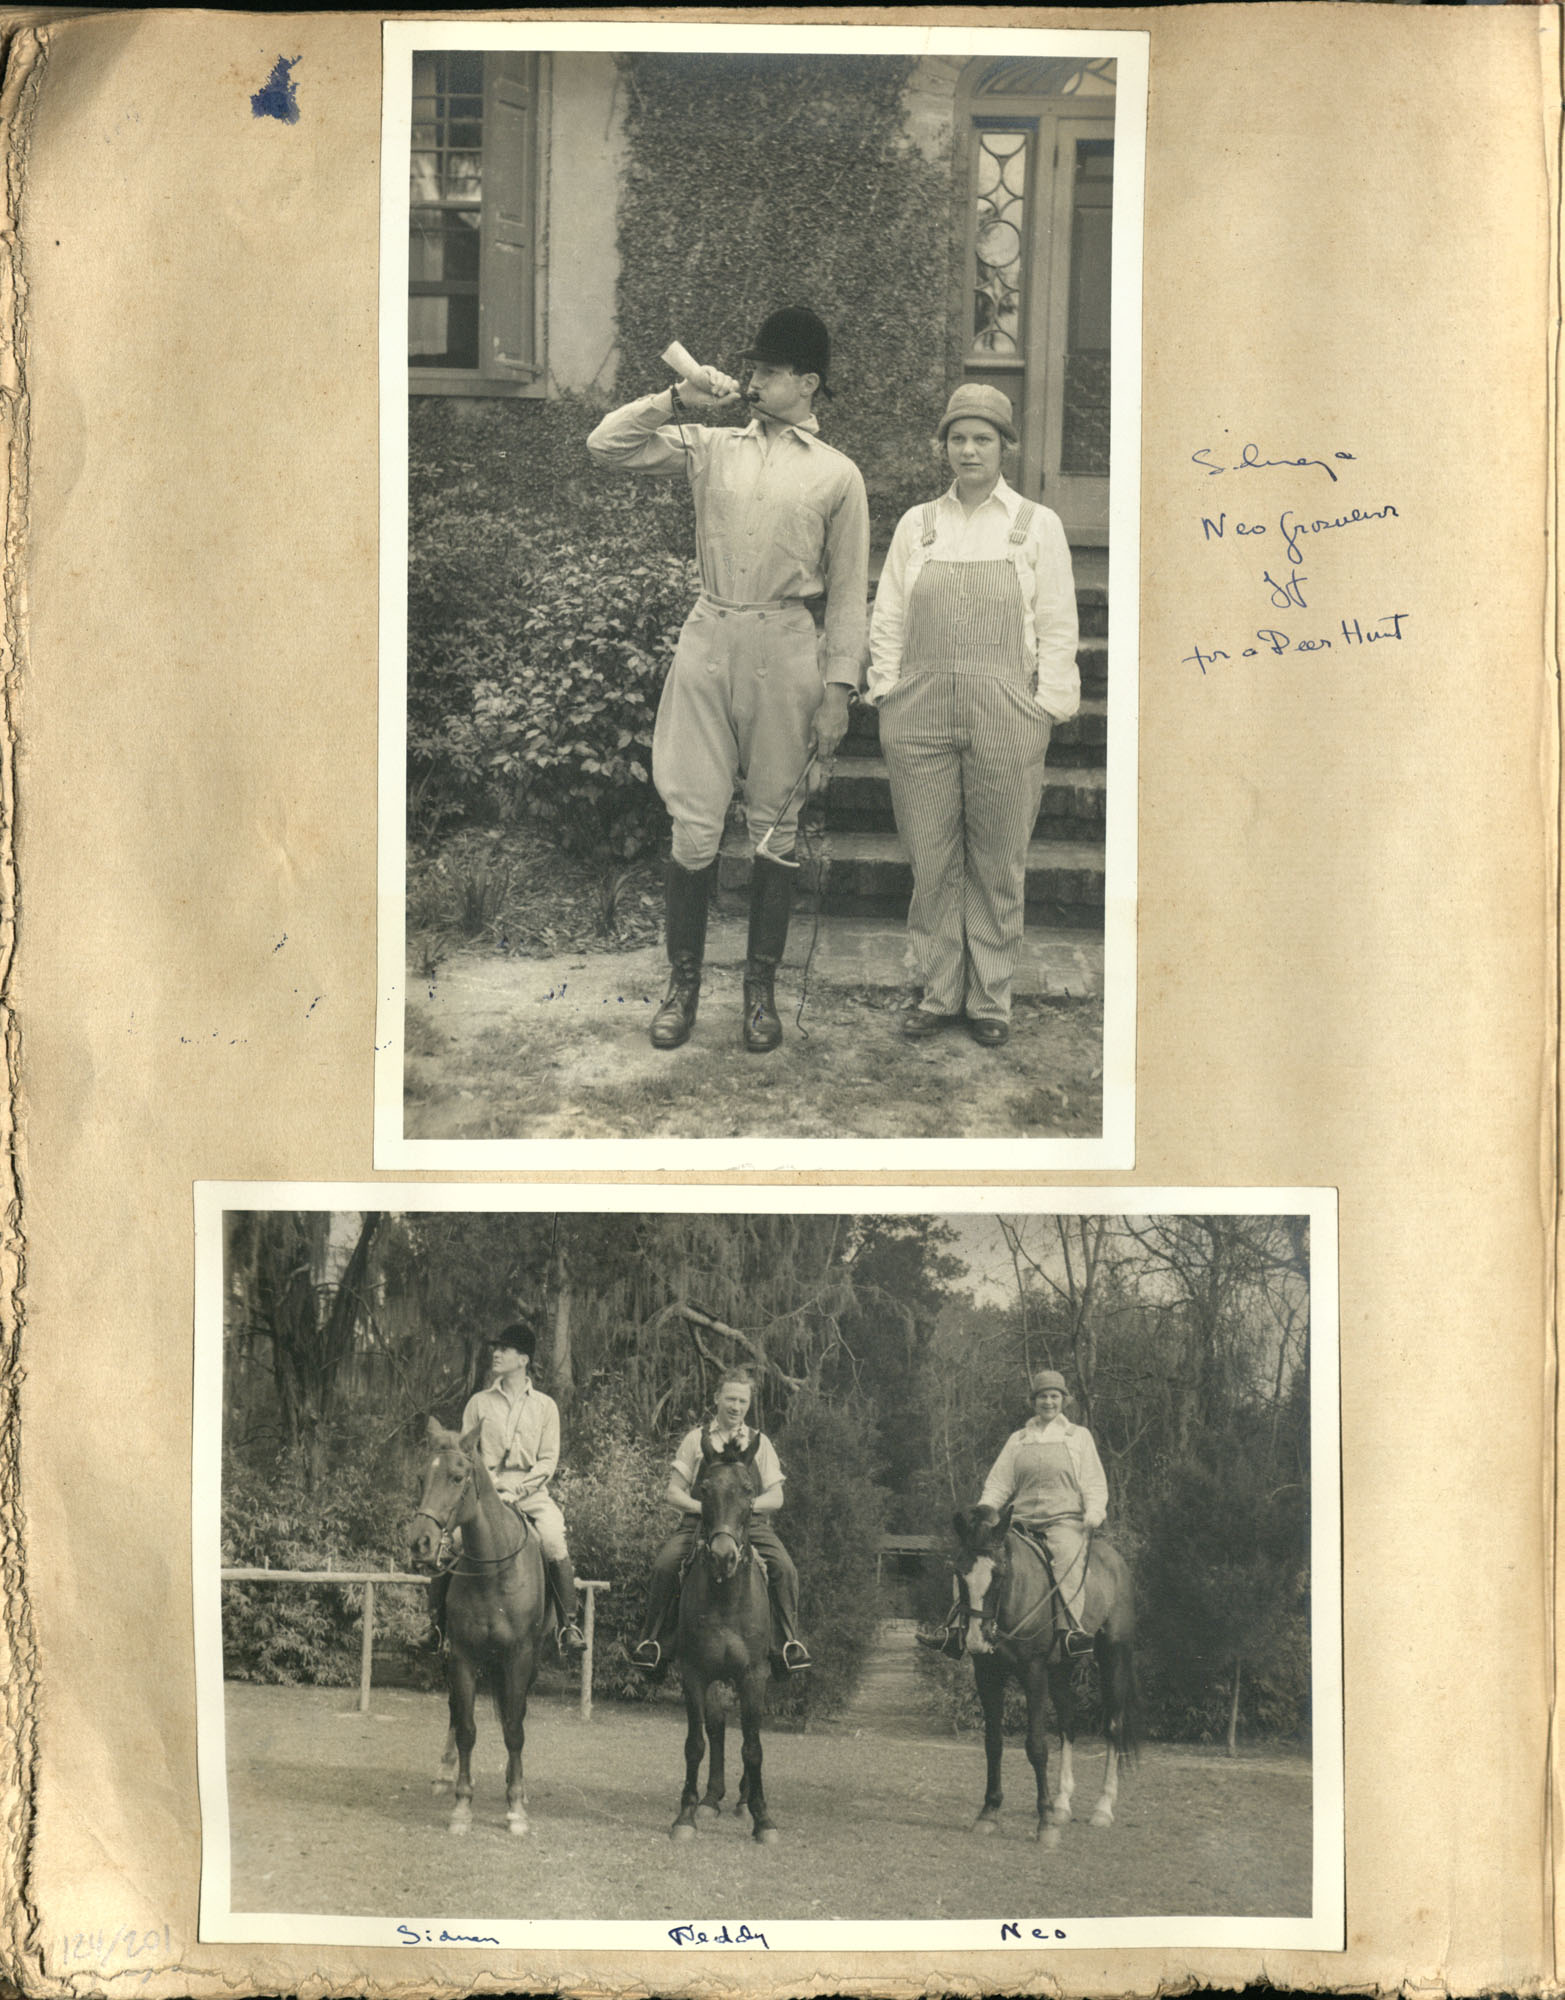 Early Medway and travels album, 1929-1937, page 124